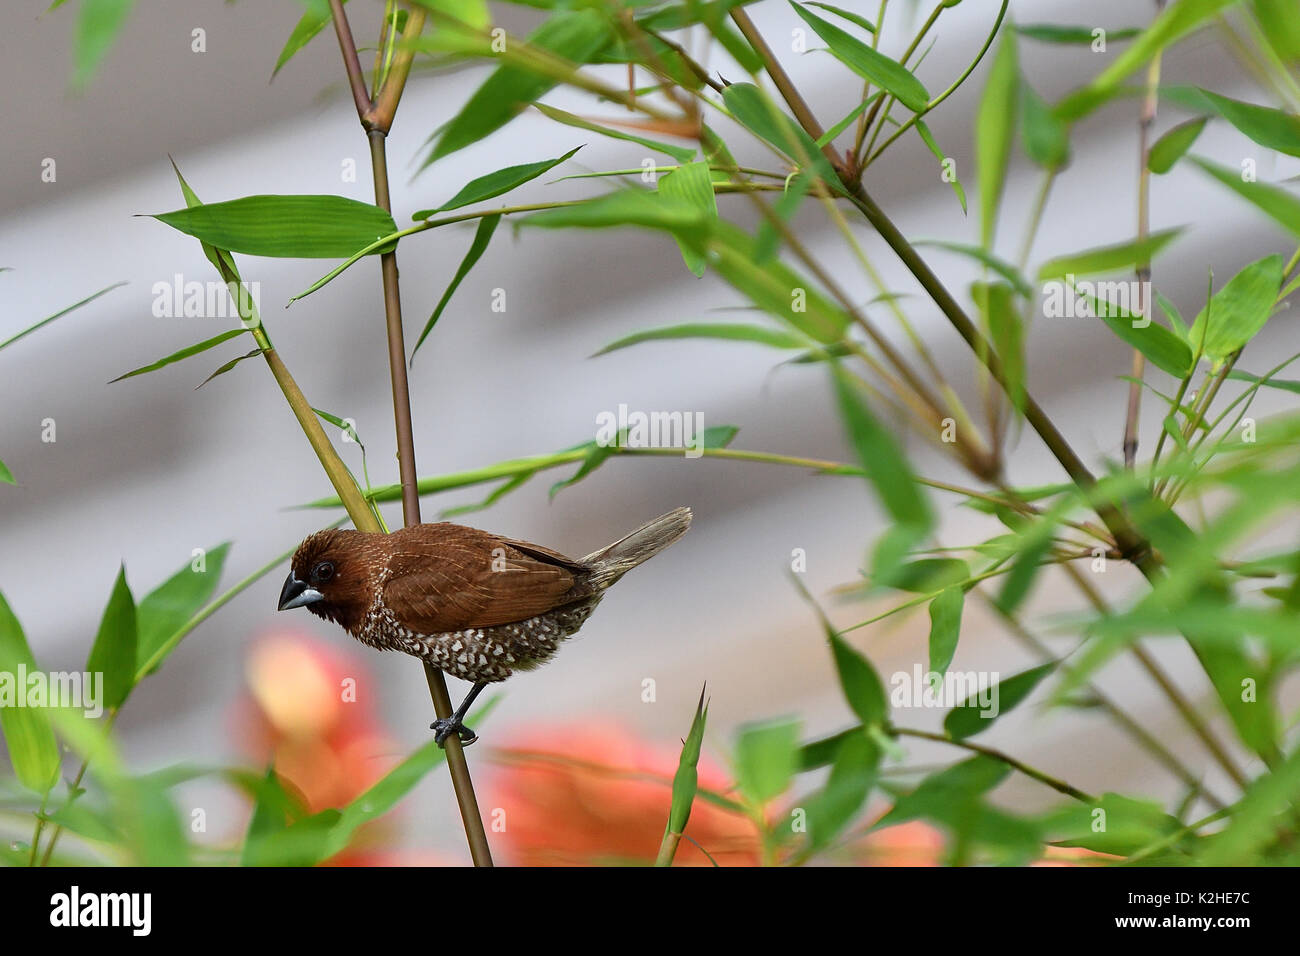 Scaly-breasted munia on the bamboo tree - Stock Image